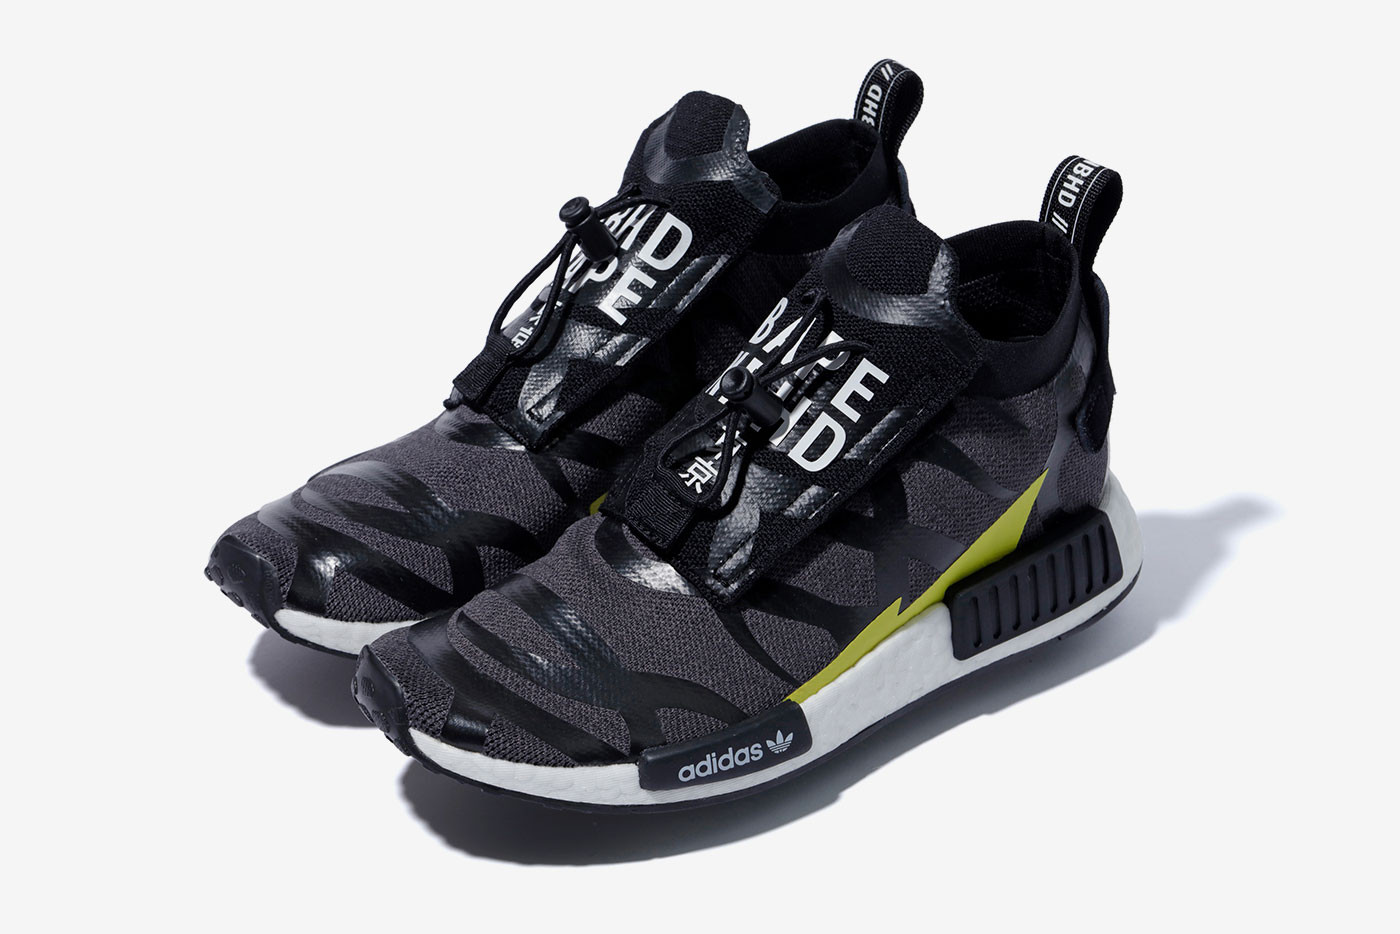 pretty nice dca7b 7299d BAPE x NEIGHBORHOOD x adidas Originals Release nmd pod shark face motif  black white 1st camo